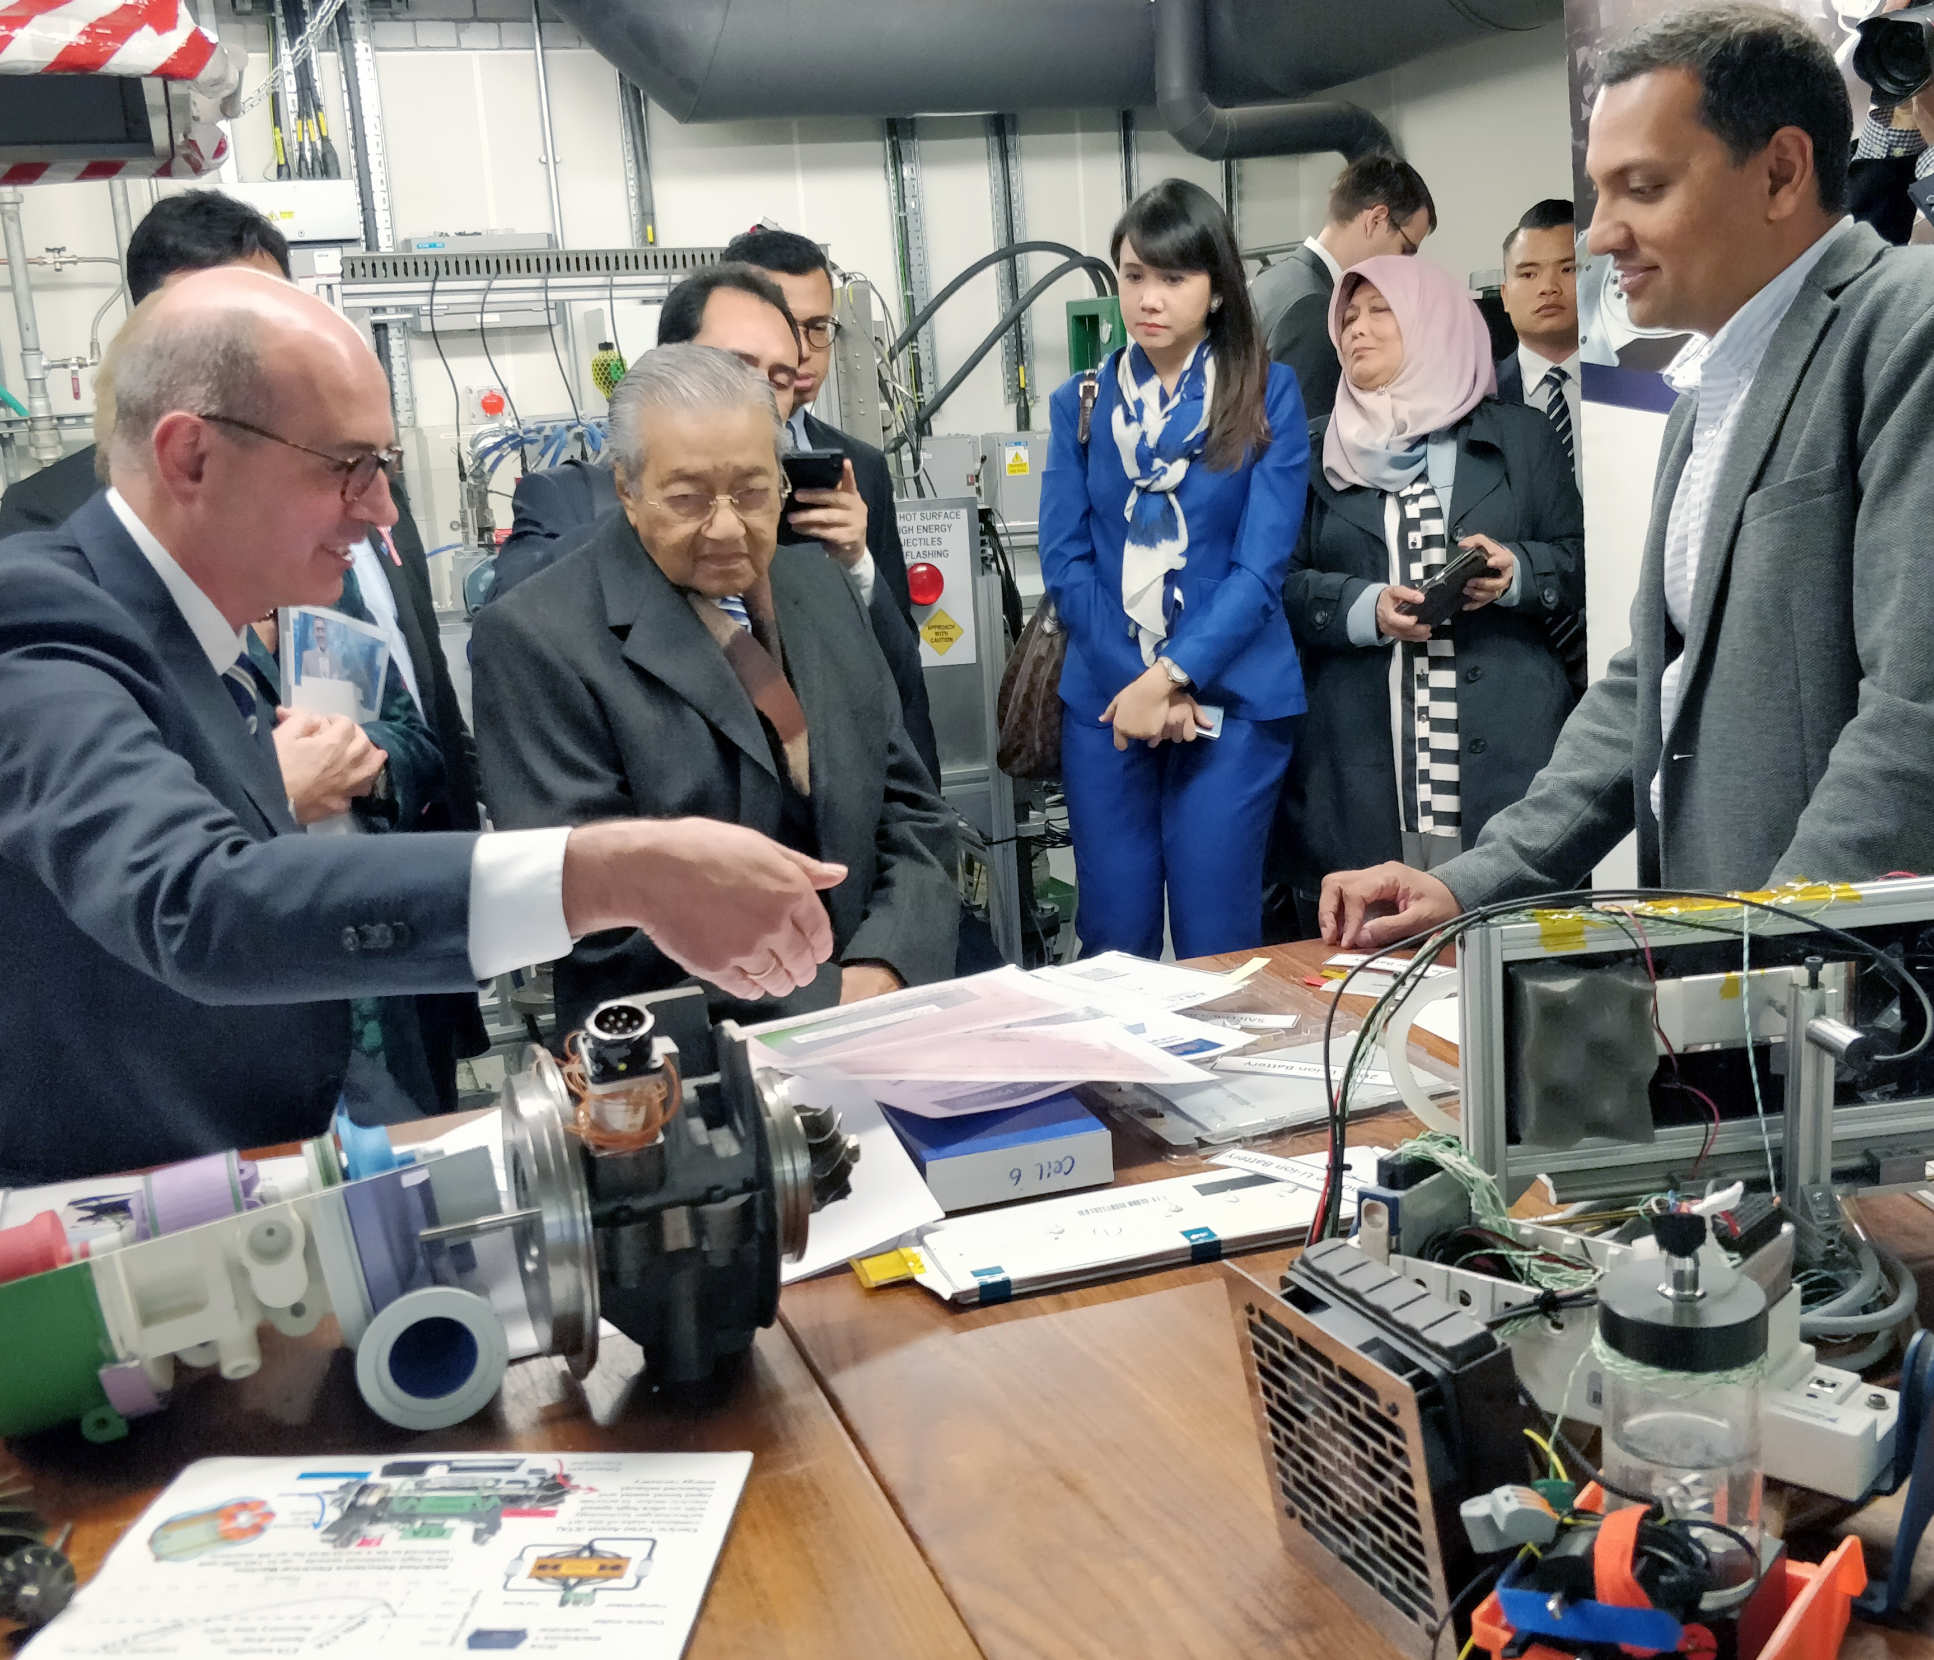 Prime Minister of Malaysia, Tun Dr Mahathir Mohamad, visits the Turbo Group laboratory, 24 September 2018